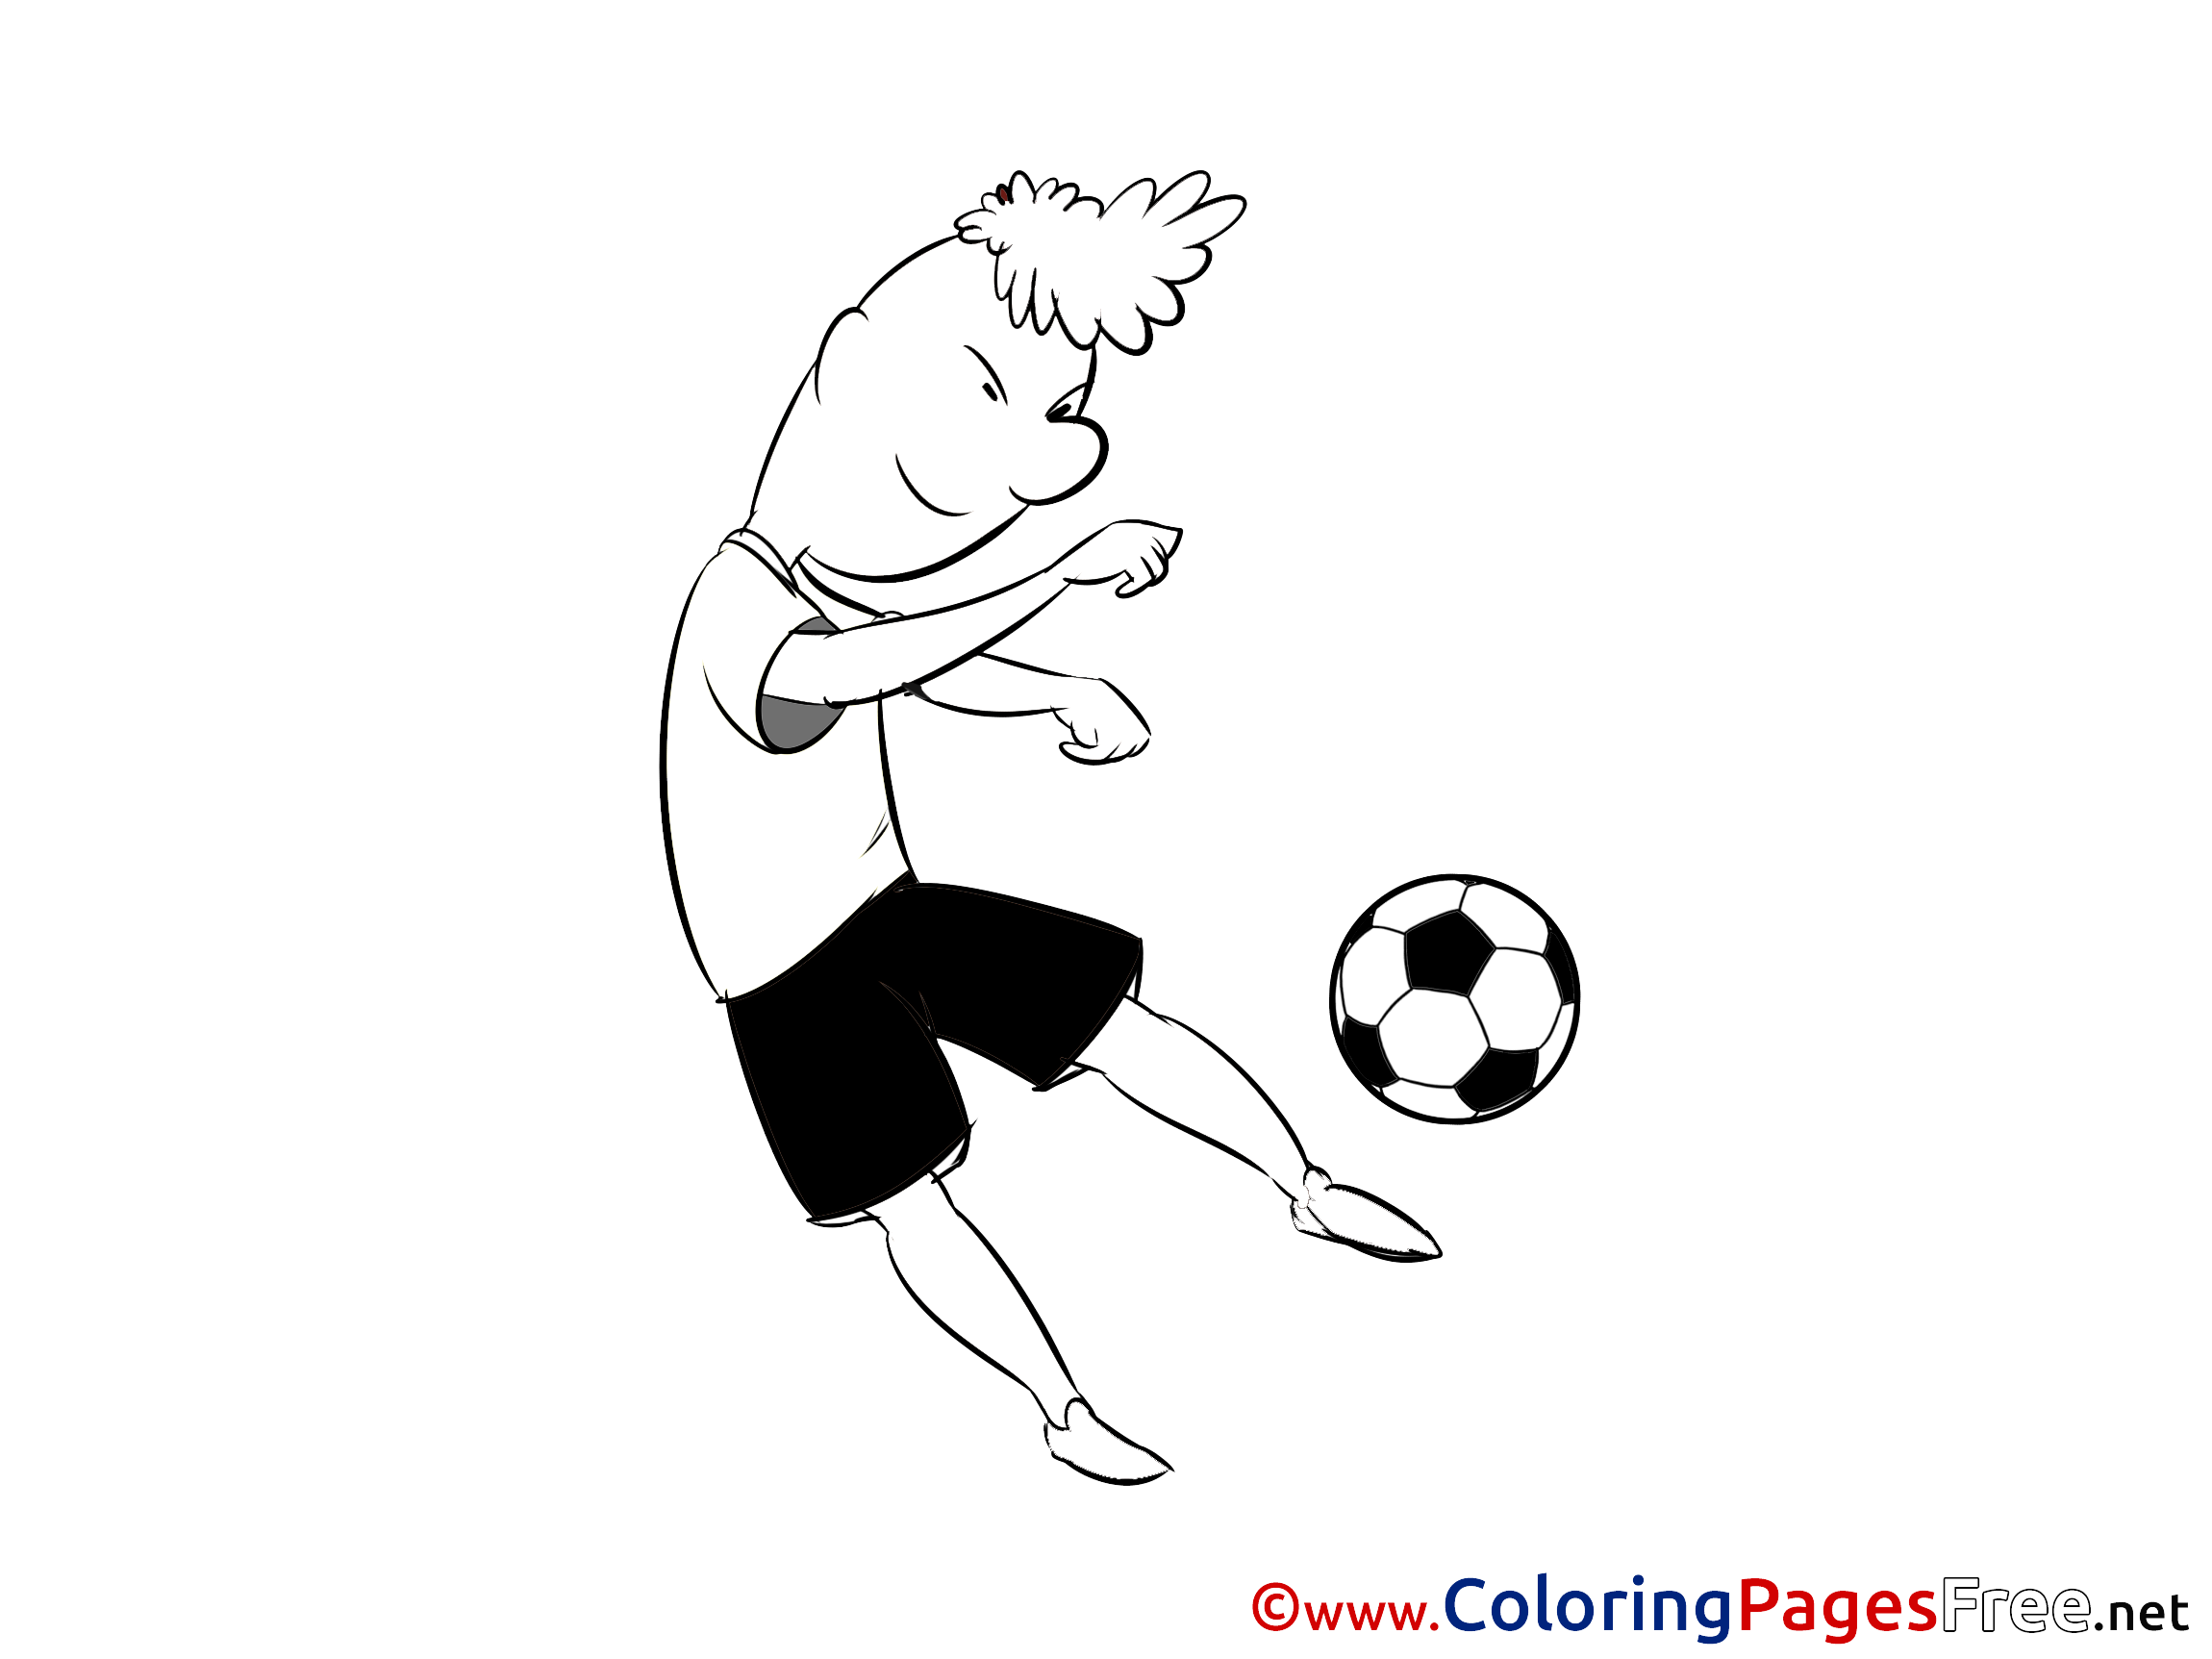 Kick Ball Coloring Sheets Soccer Free